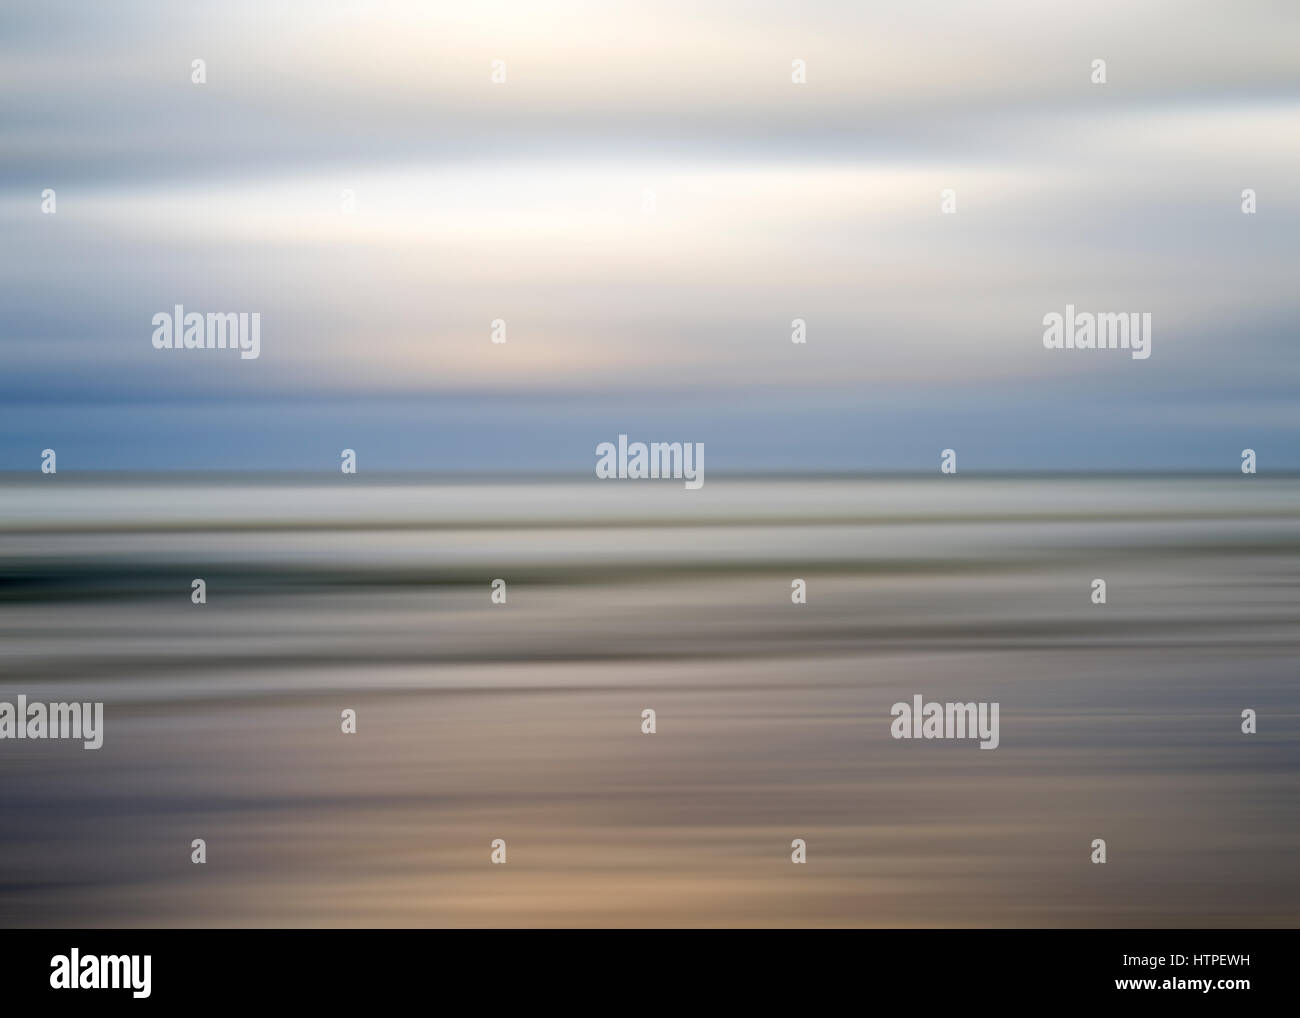 Flou de mouvement, de-concentré, la mer de nuages le matin. Photo Stock